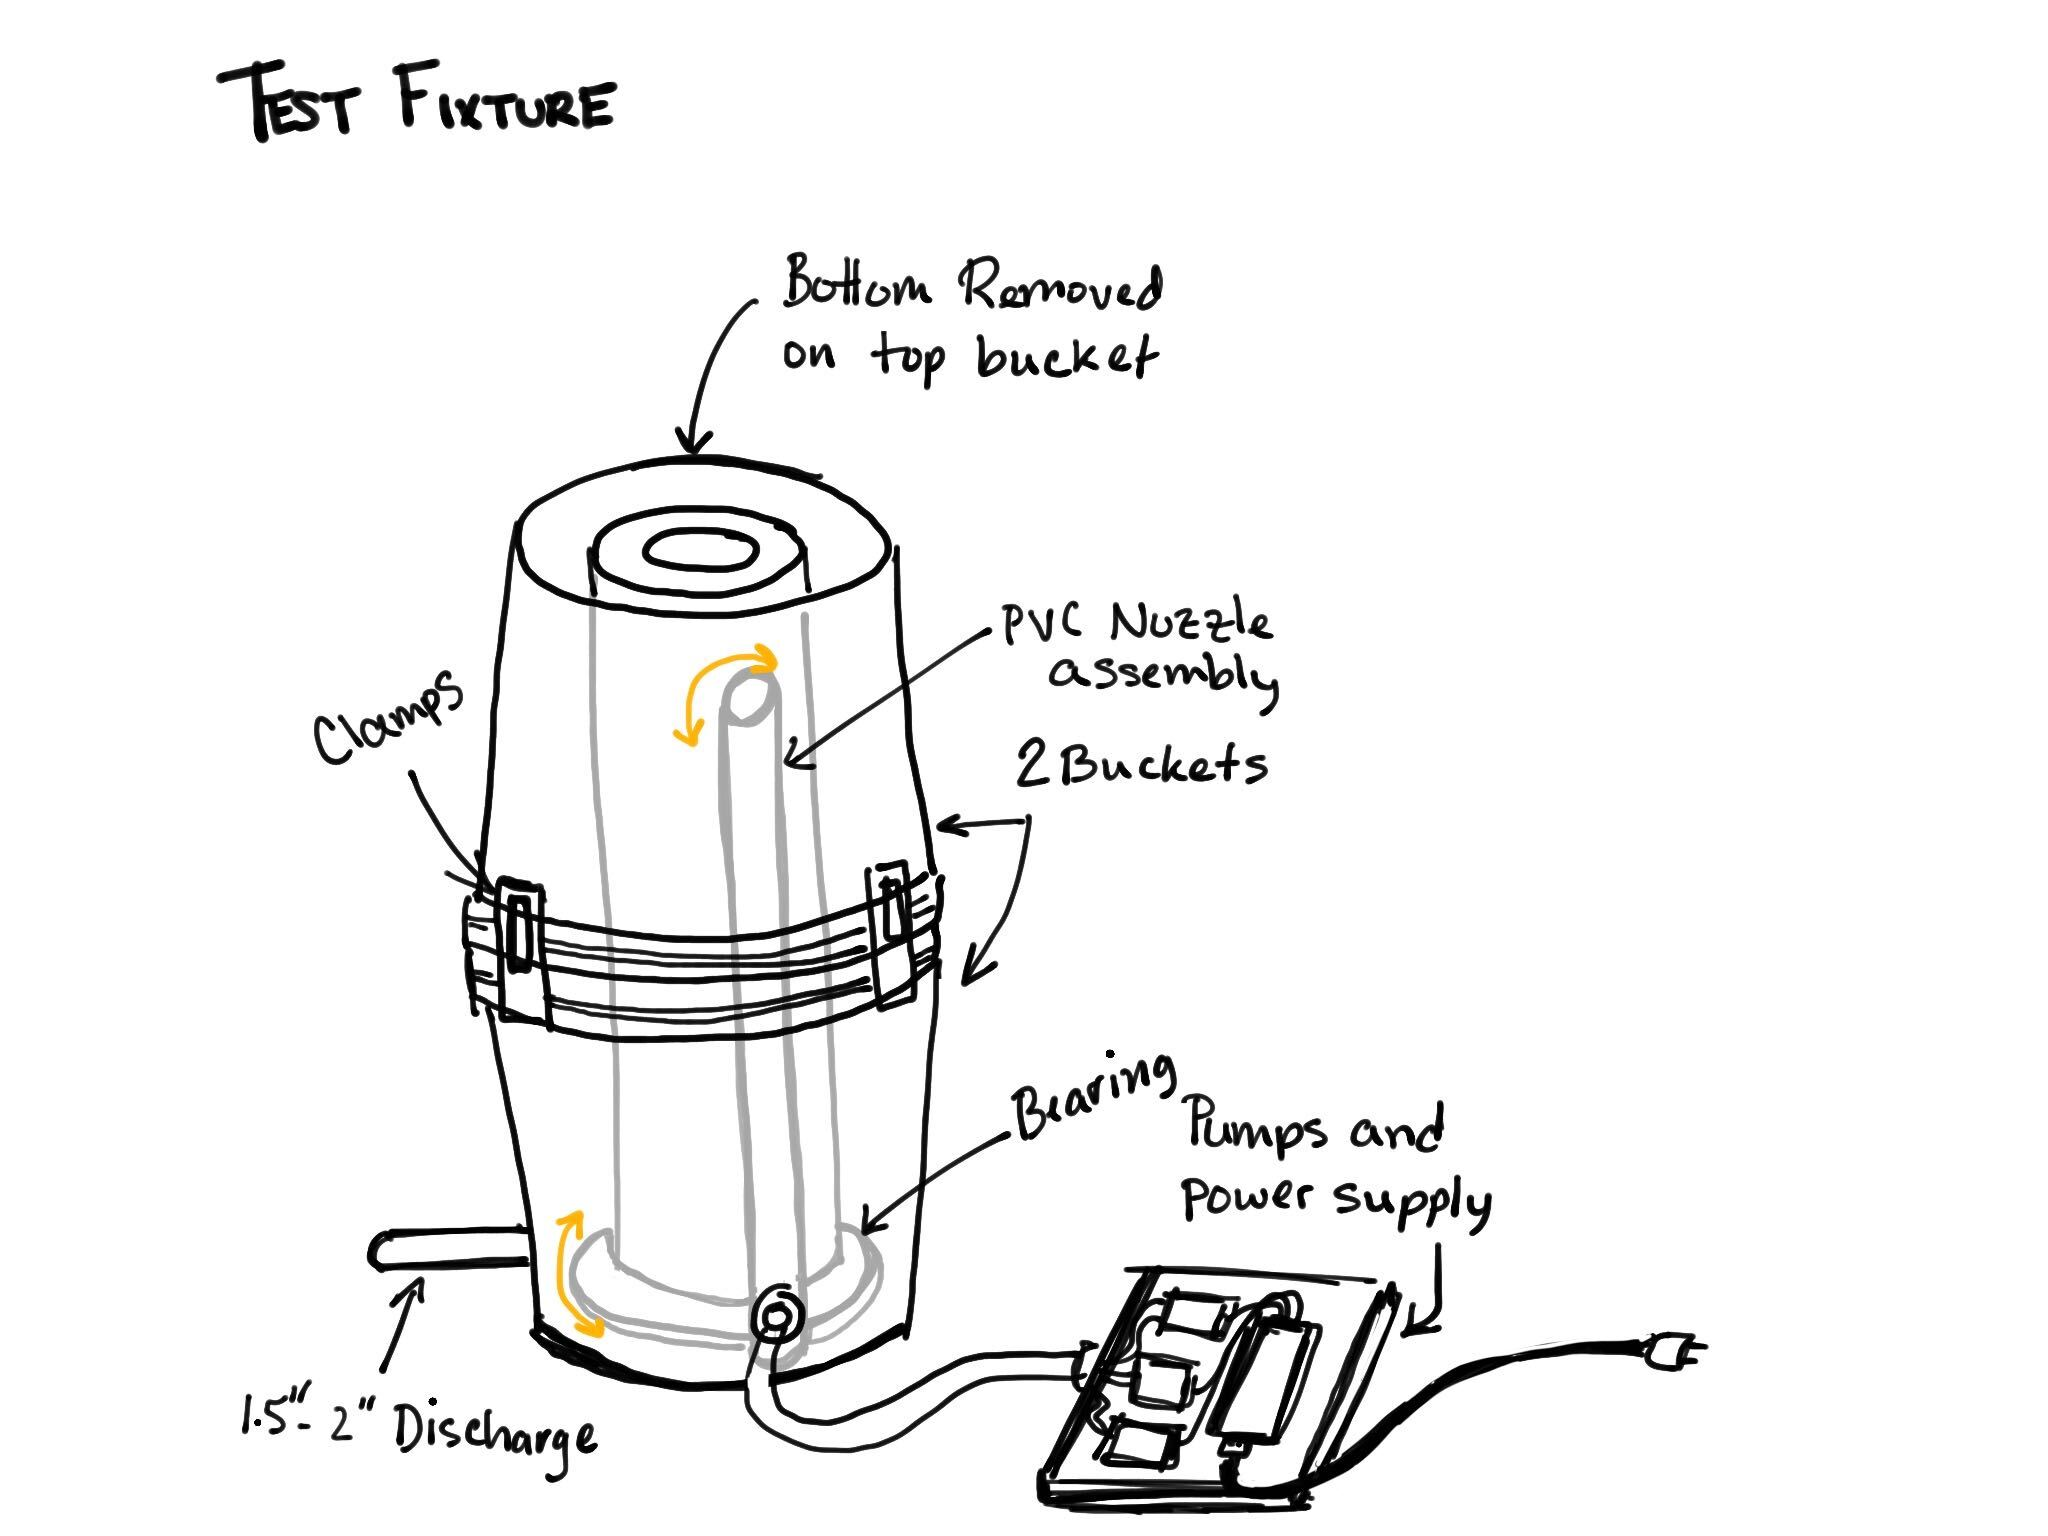 An early sketch drawing showing the test fixture used to clean a cartridge filter.